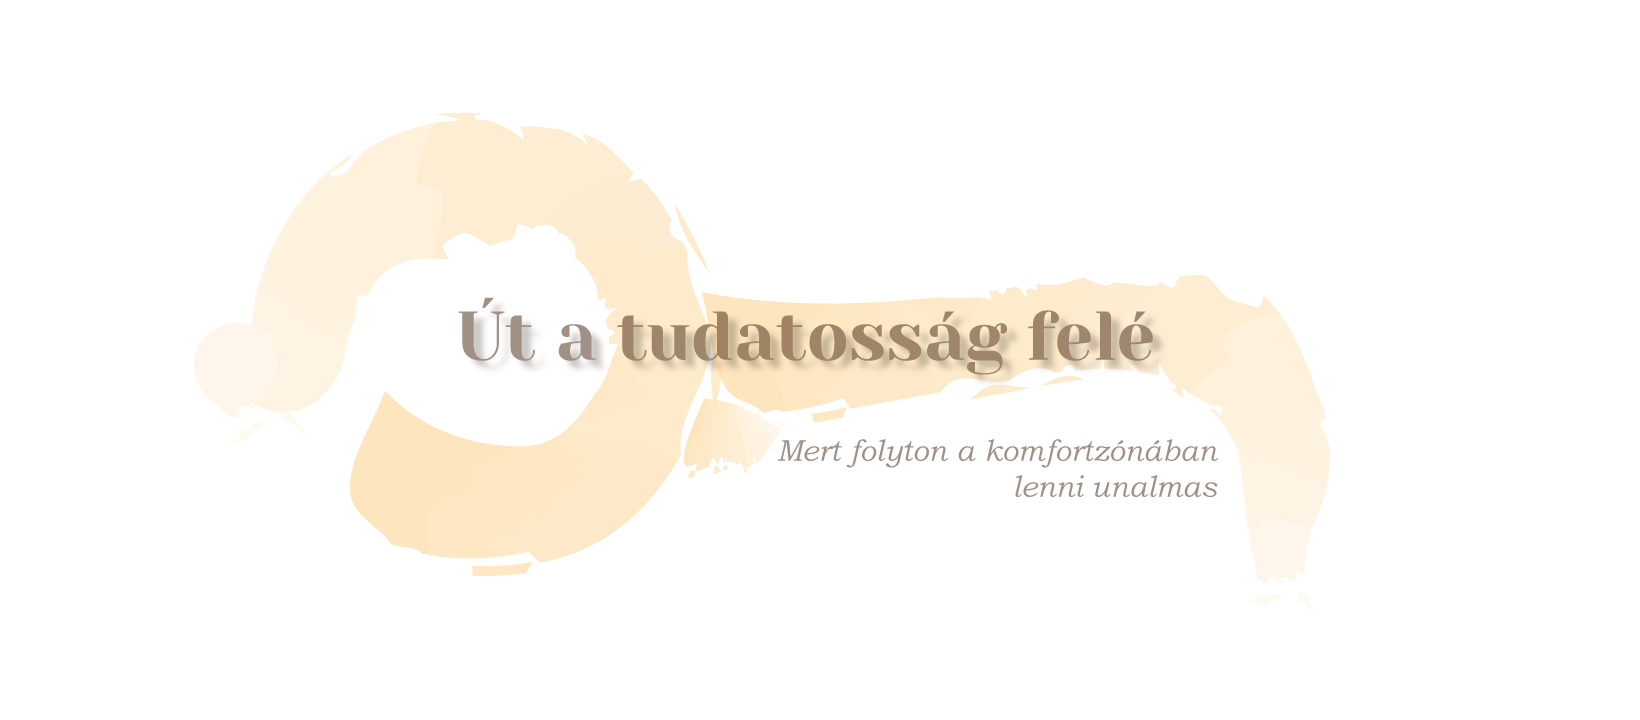 atudatosut-facebook-page.png